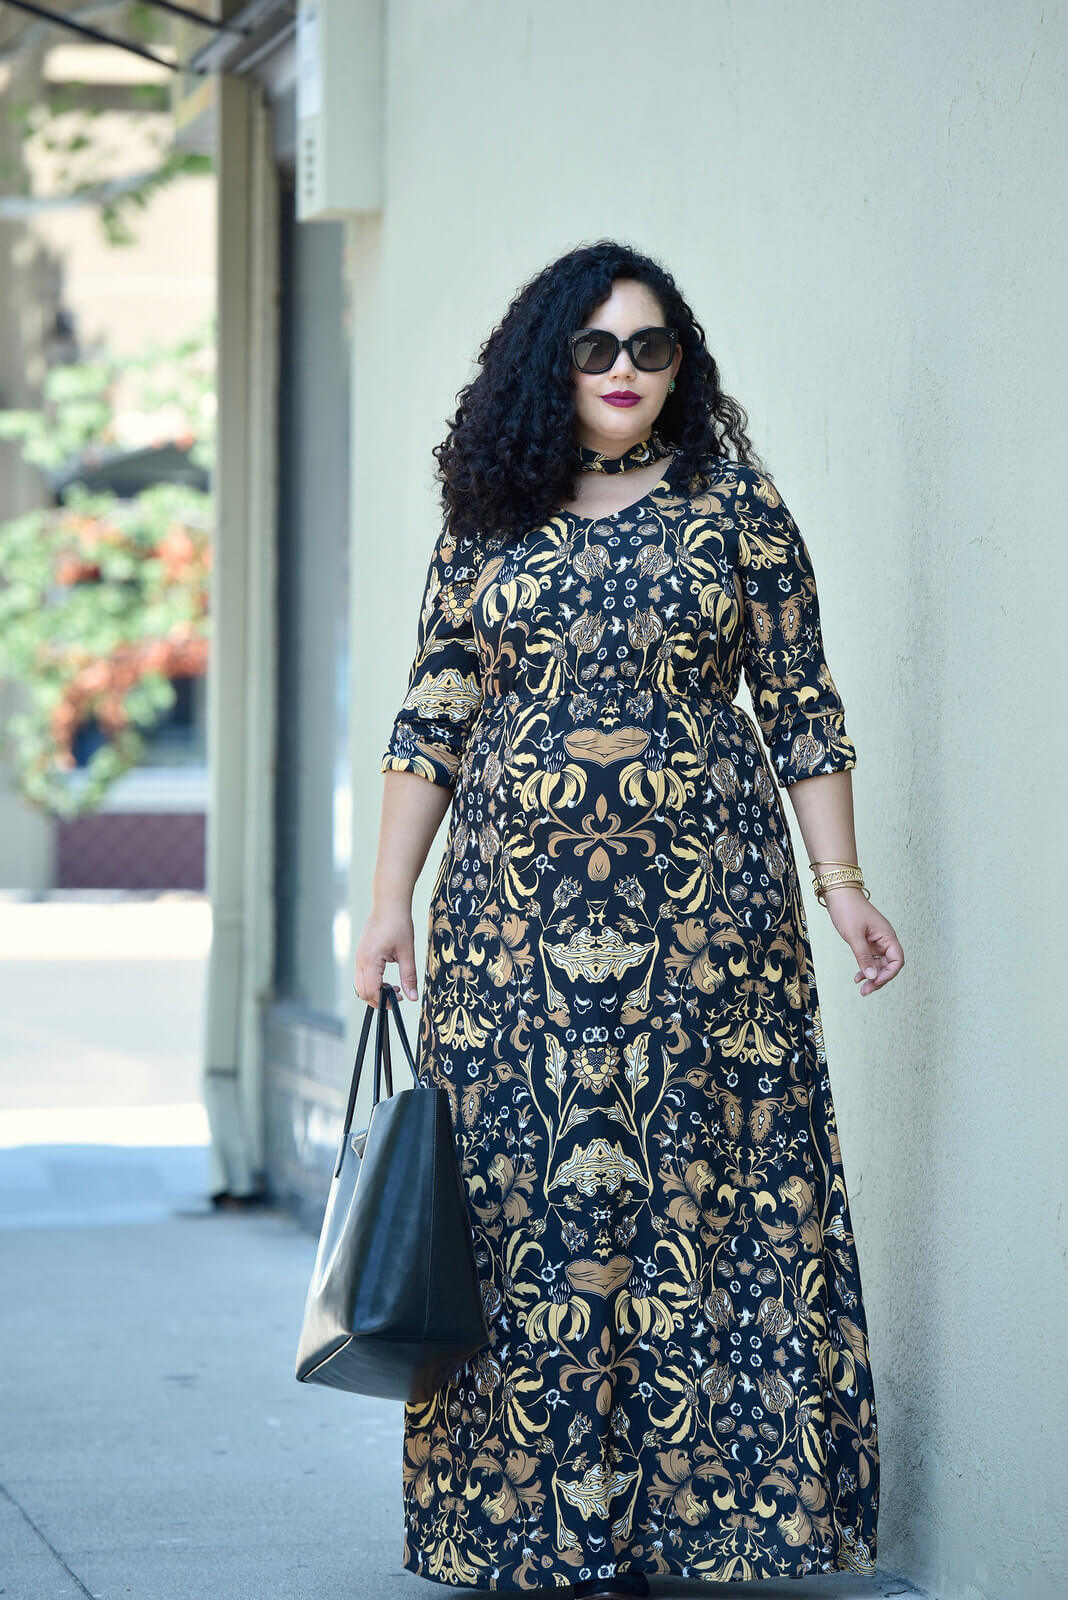 A Fresh Take on Fall Floral via@ GirlWithCurves #plussize #curvystyle #girlwithcurves #curvy #model #maxi #dress #plussize #fashion #style